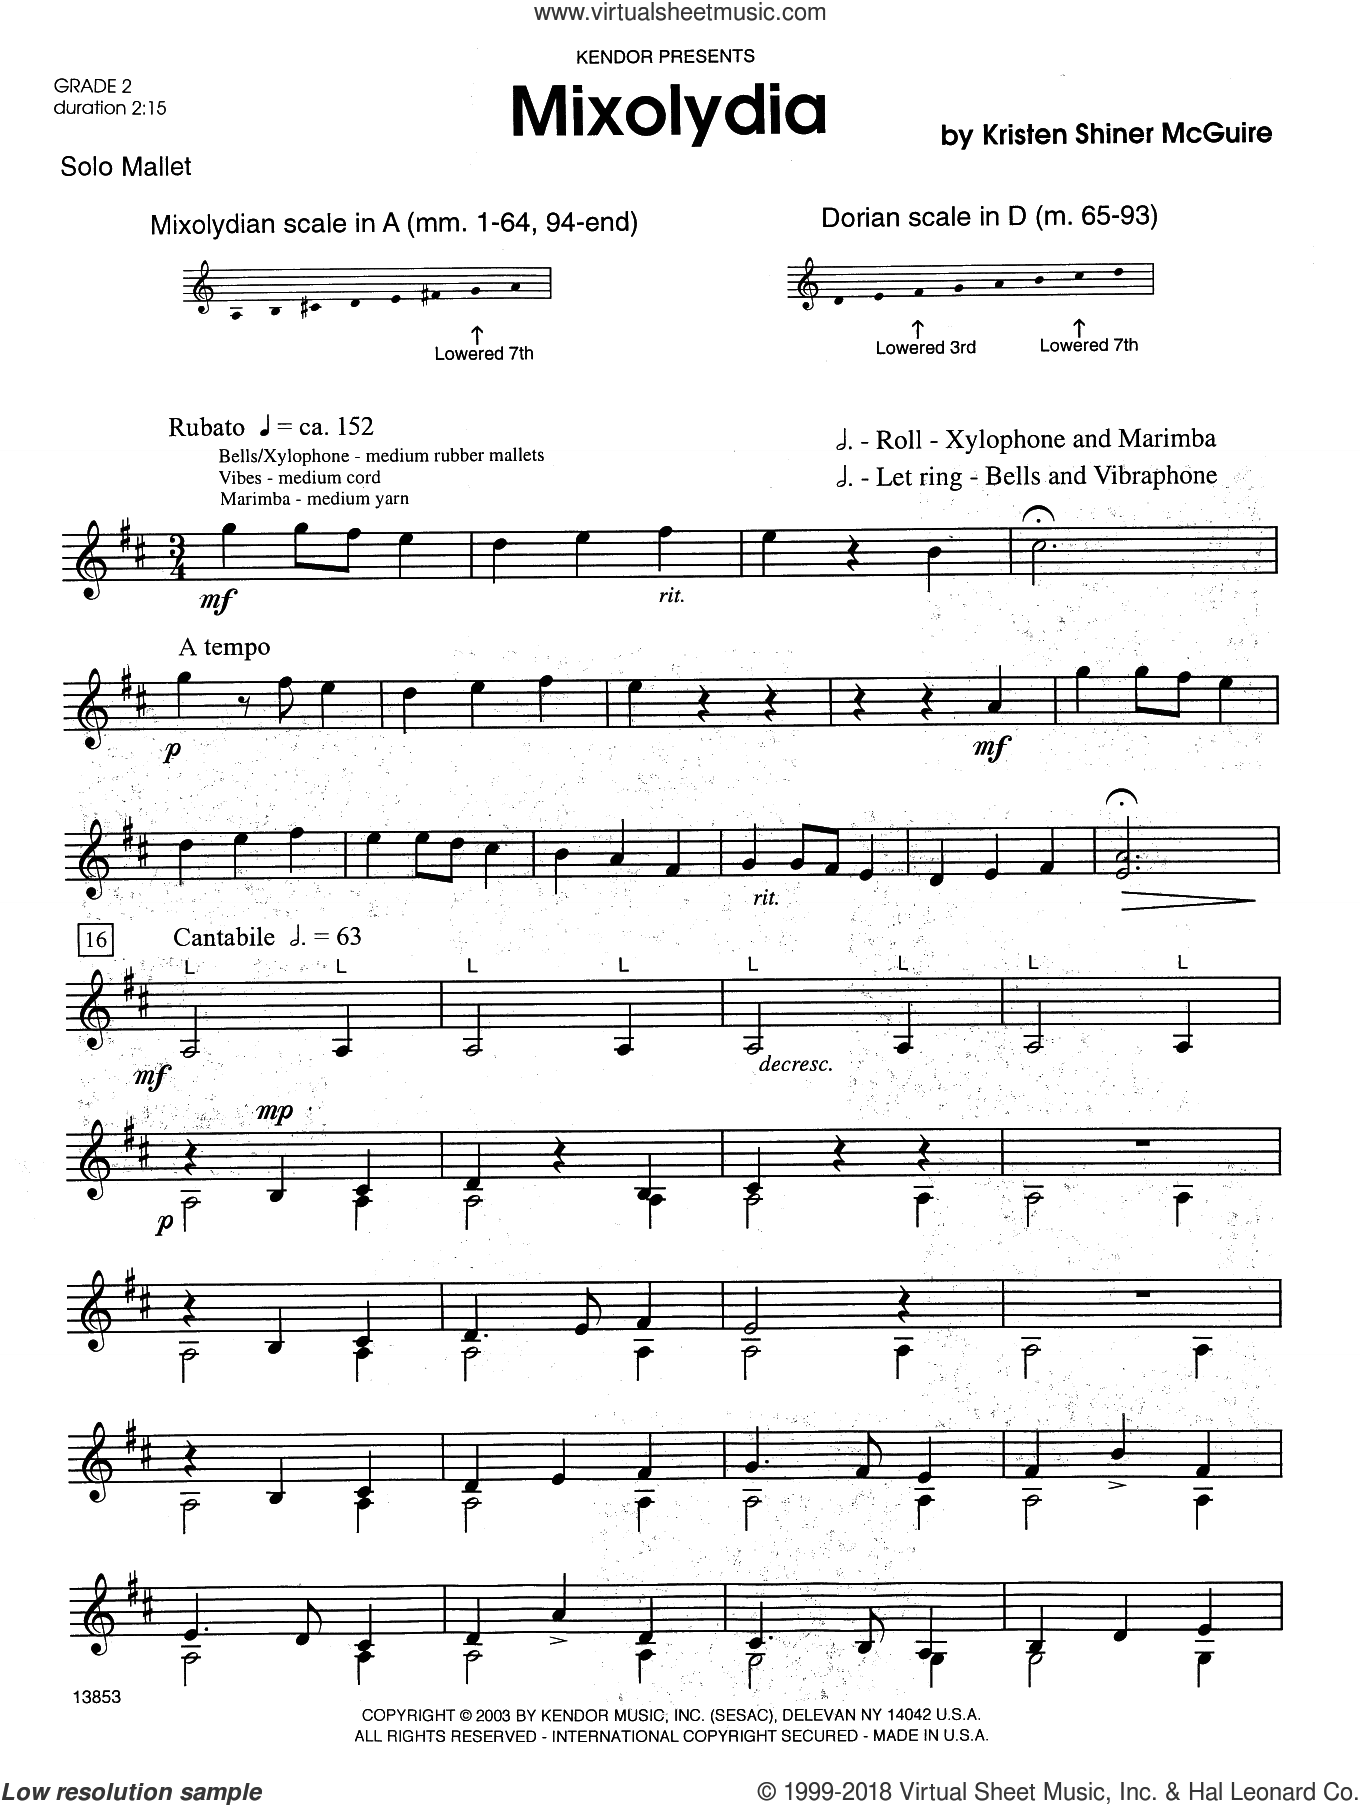 Mixolydia sheet music for percussions by Kristen Shiner McGuire, intermediate skill level